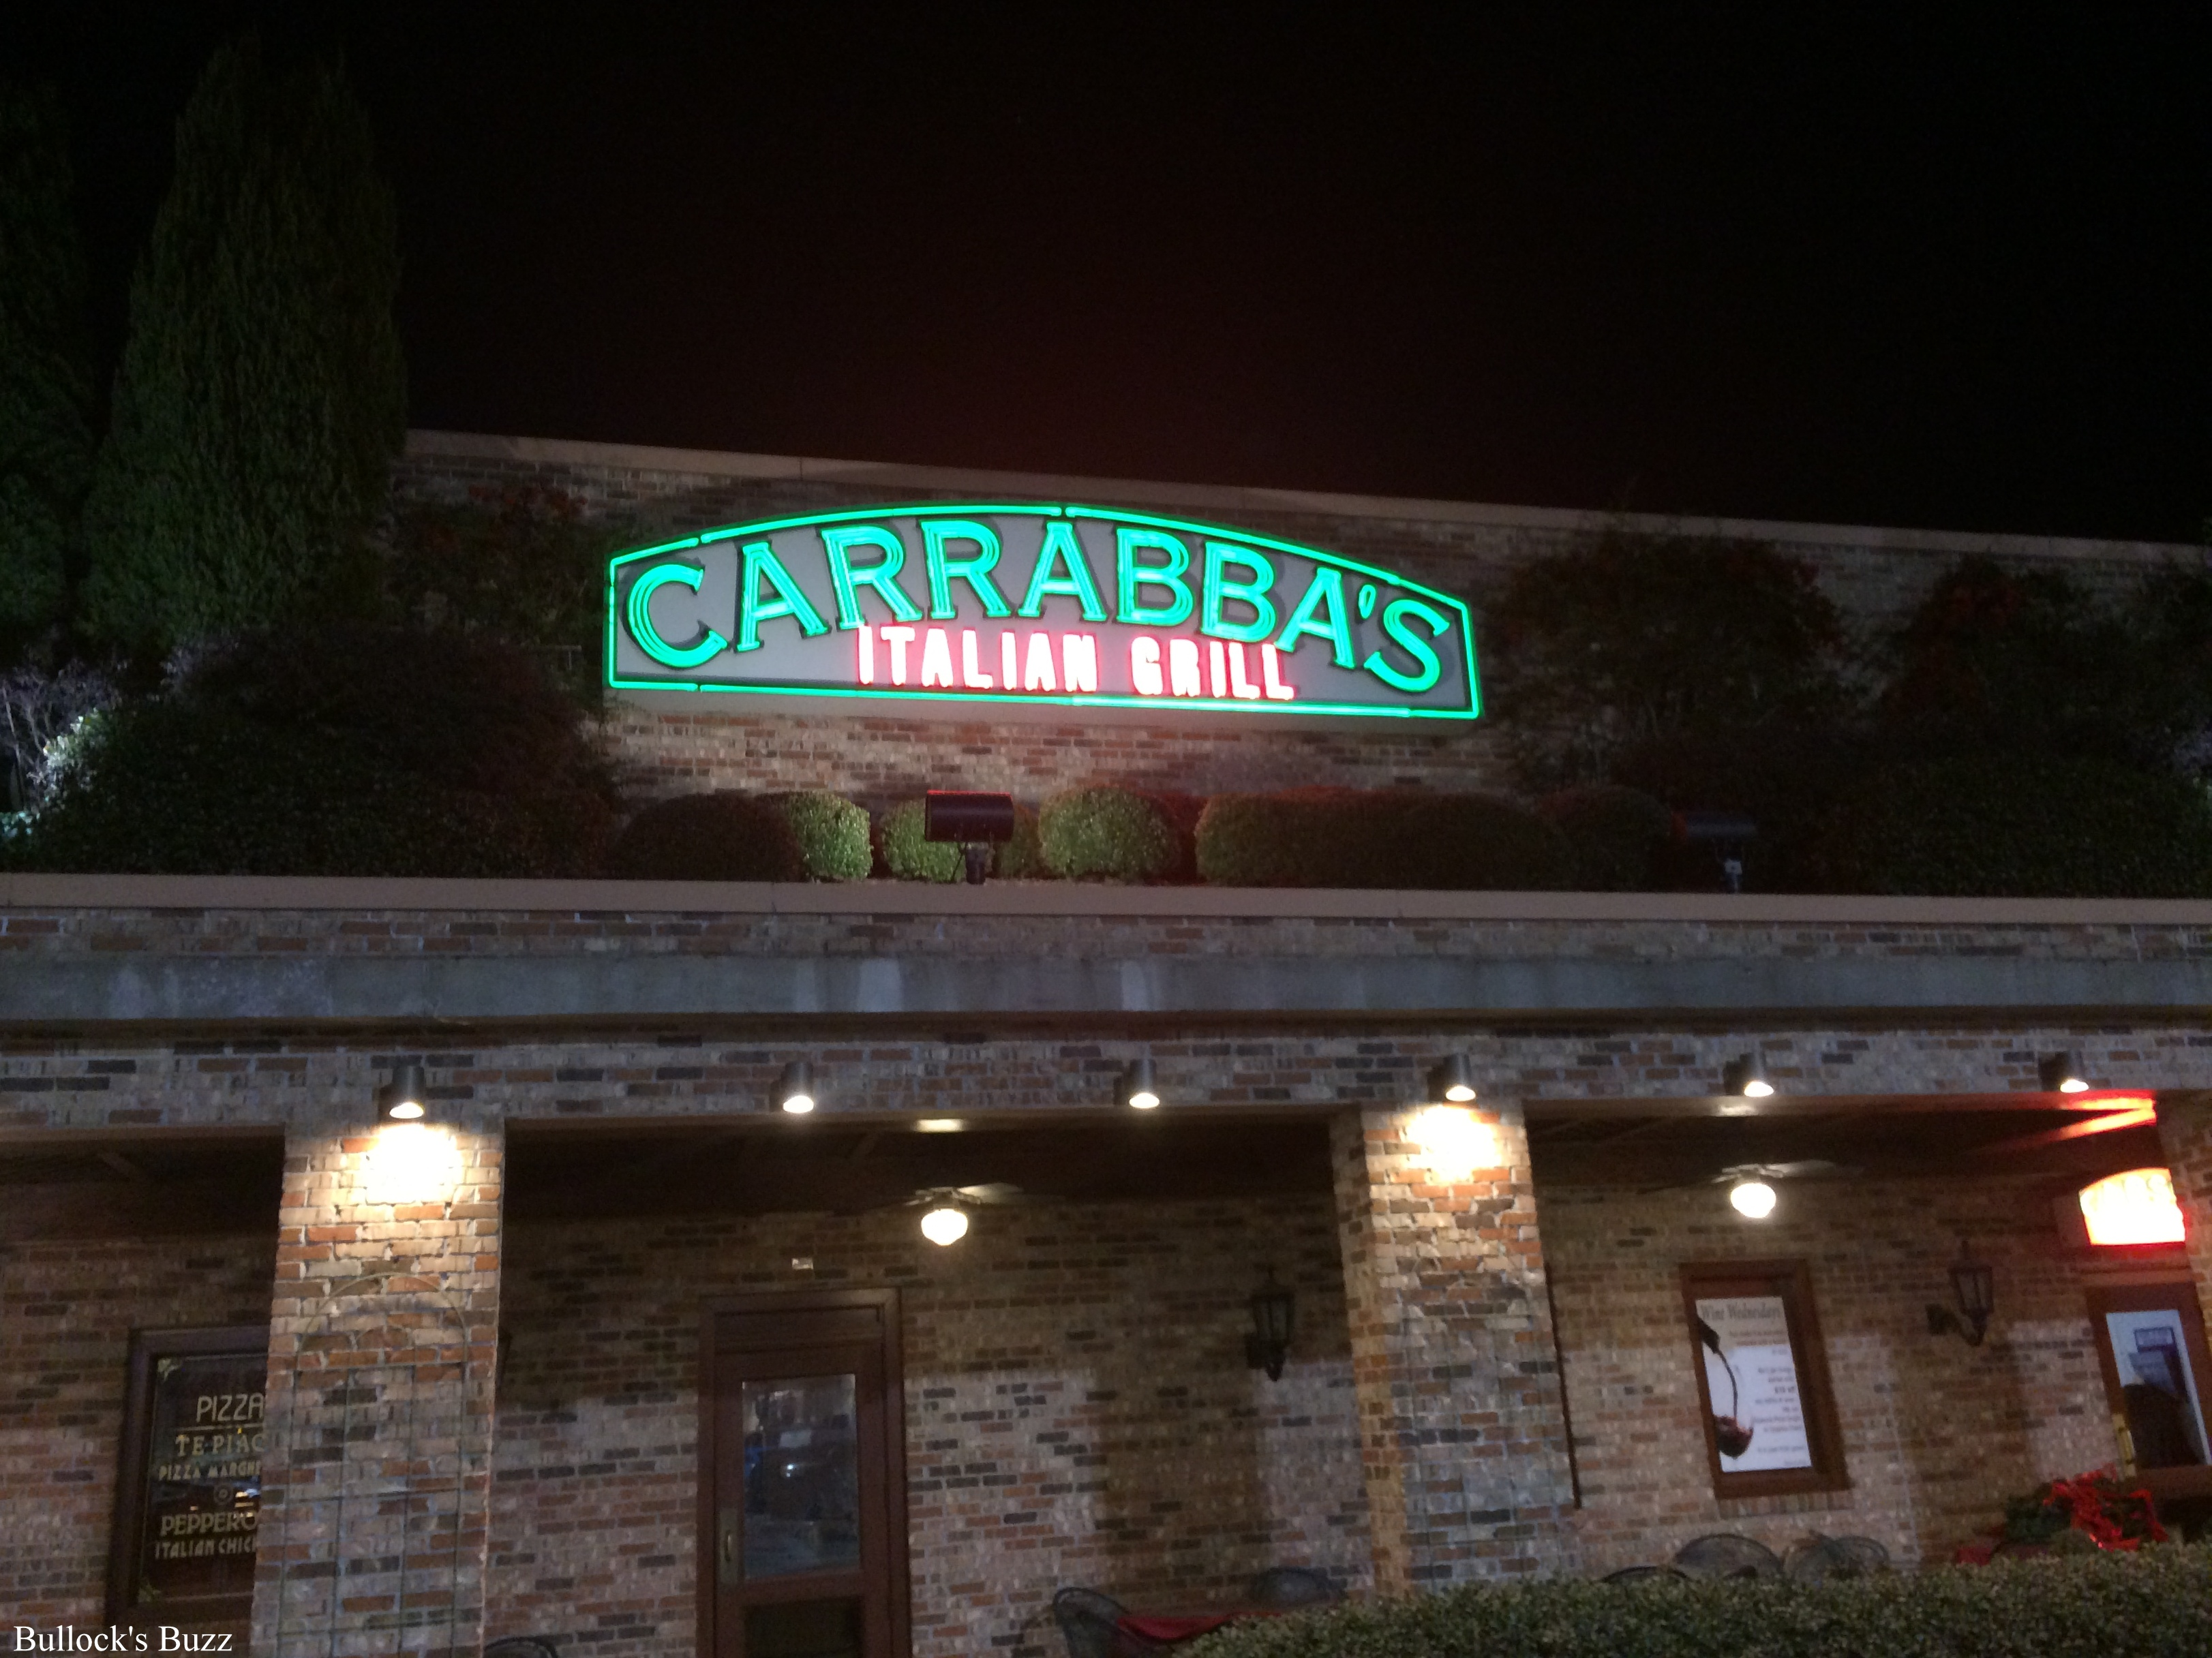 photo regarding Carrabba's Printable Menu named Carrabbas Contemporary Menu Italian Values - Previously mentioned 15 Clean Products for